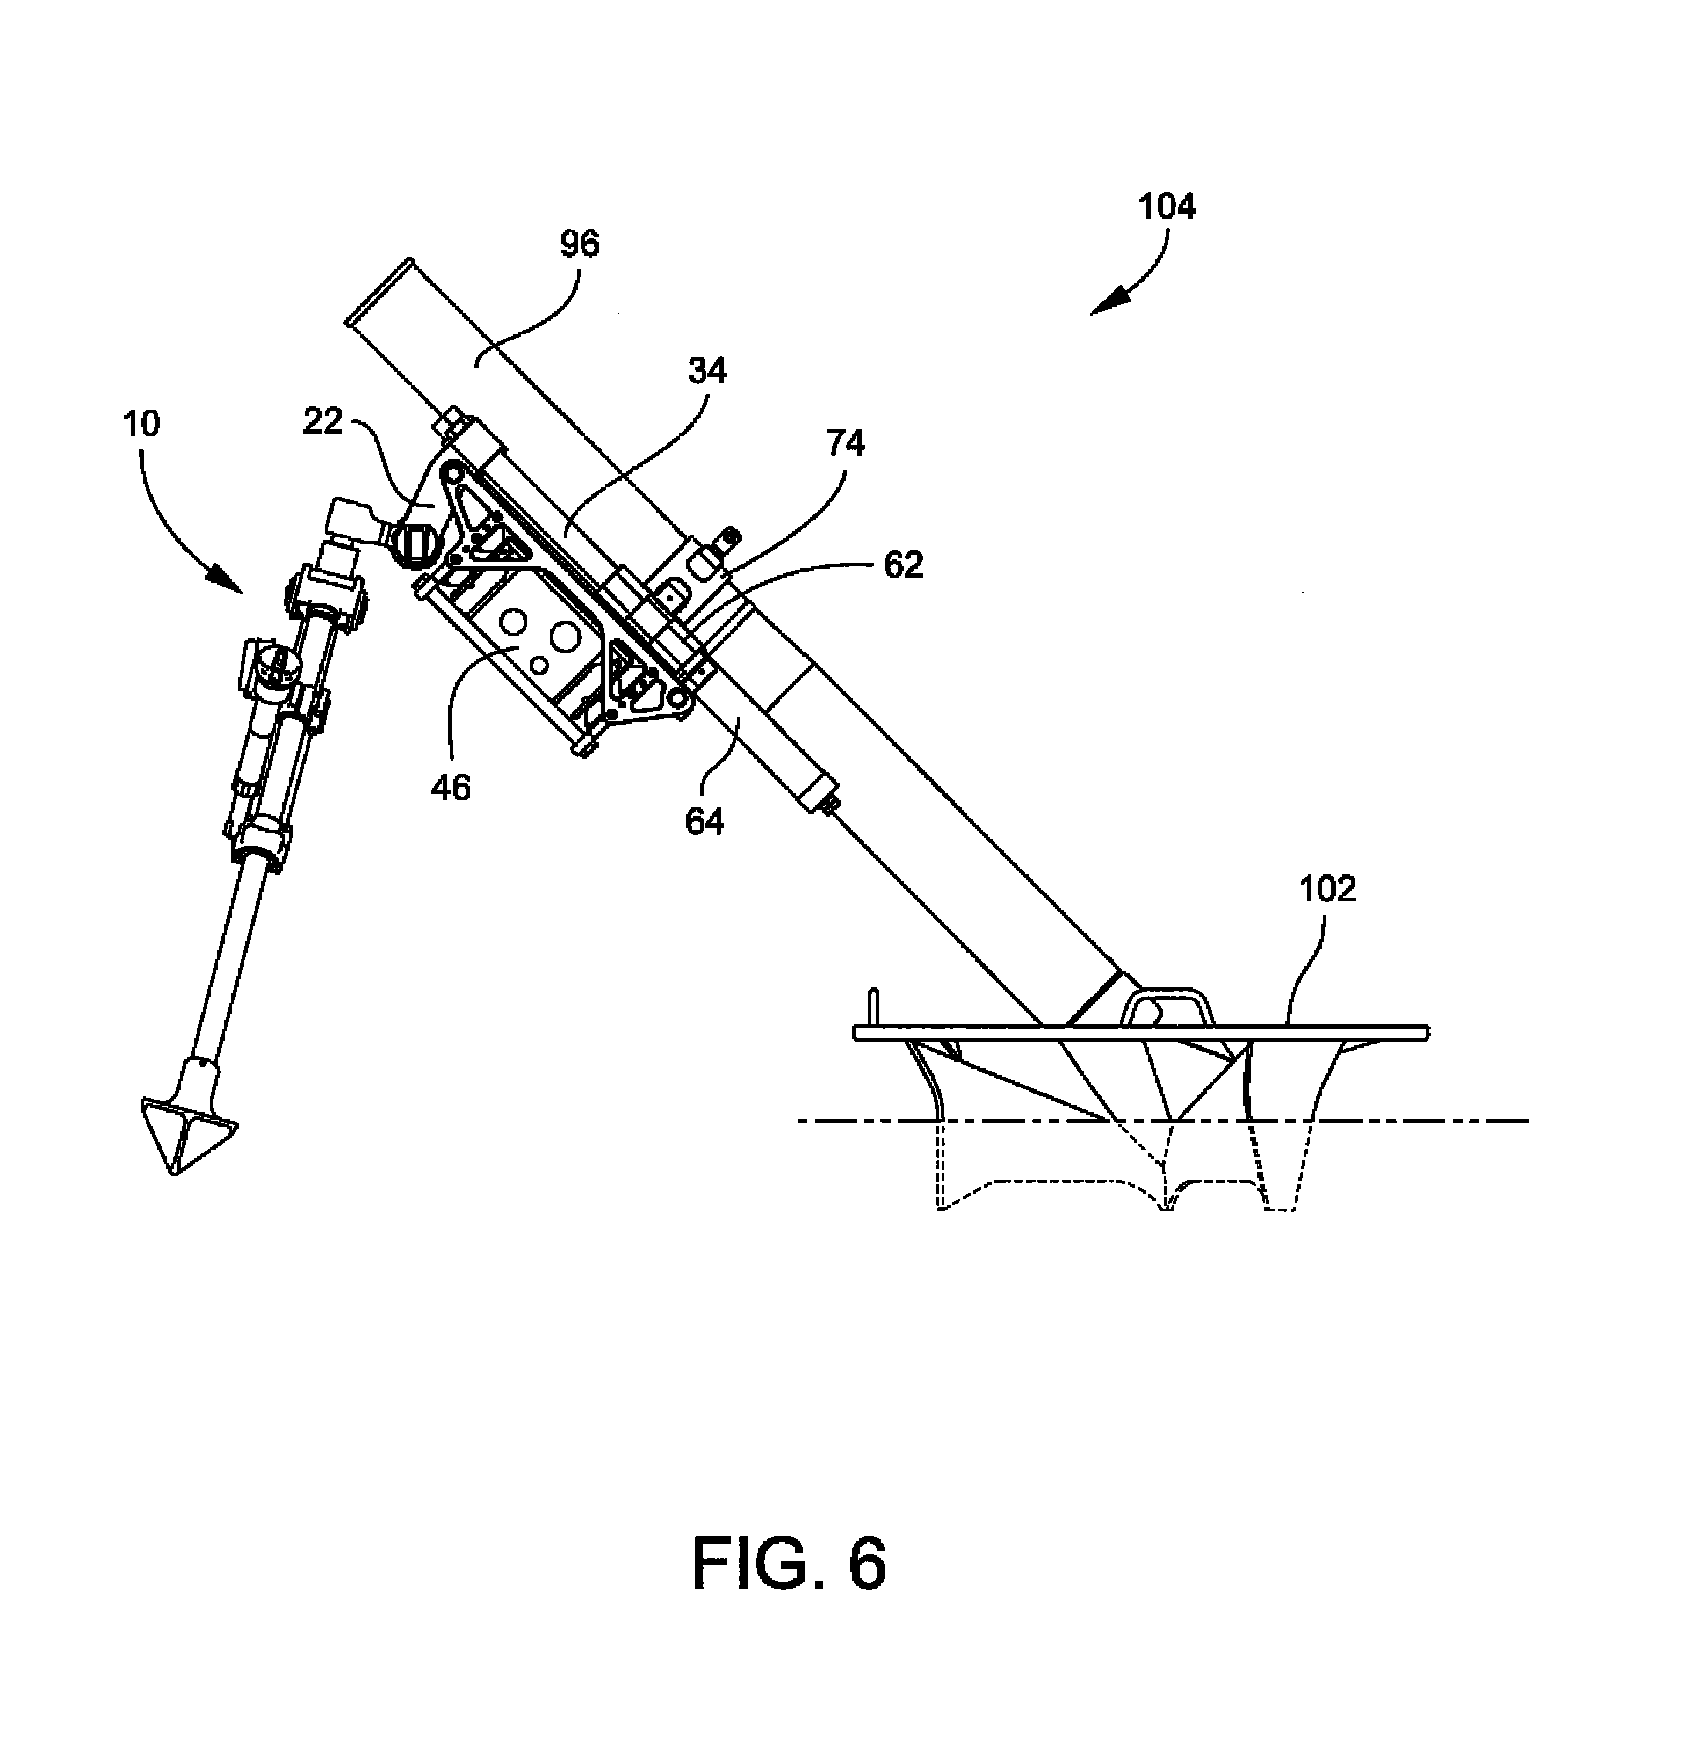 Mortar Fire Control System : Patent us bipod mounted mortar fire control